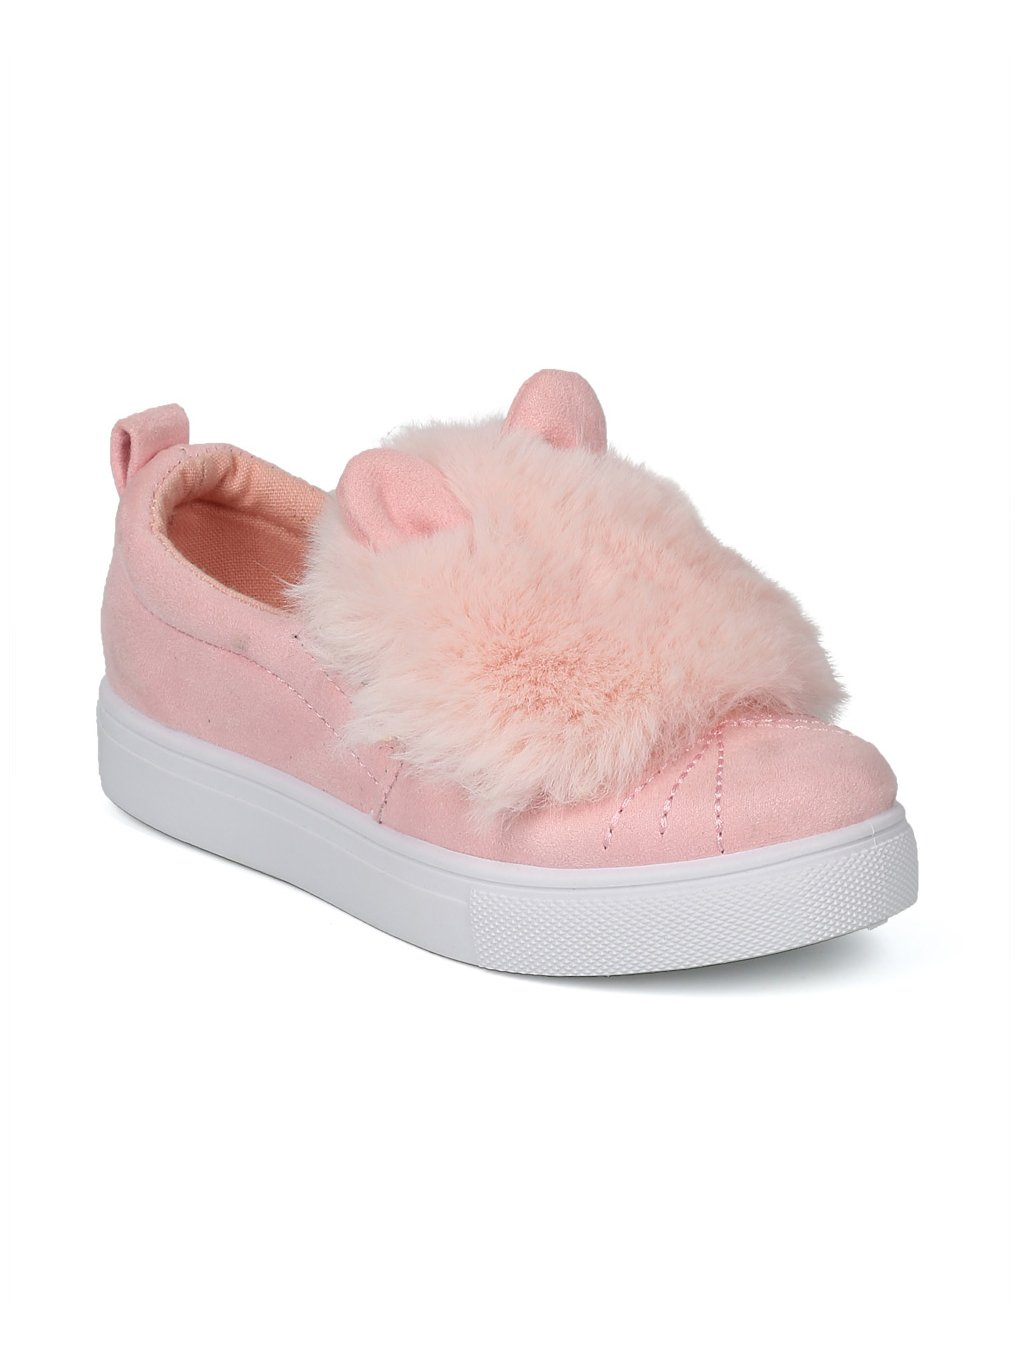 Girls Faux Suede Fuzz Pom Pom Animal Slip On Sneaker HG03 - Pink Mix Media (Size: Little Kid 13)